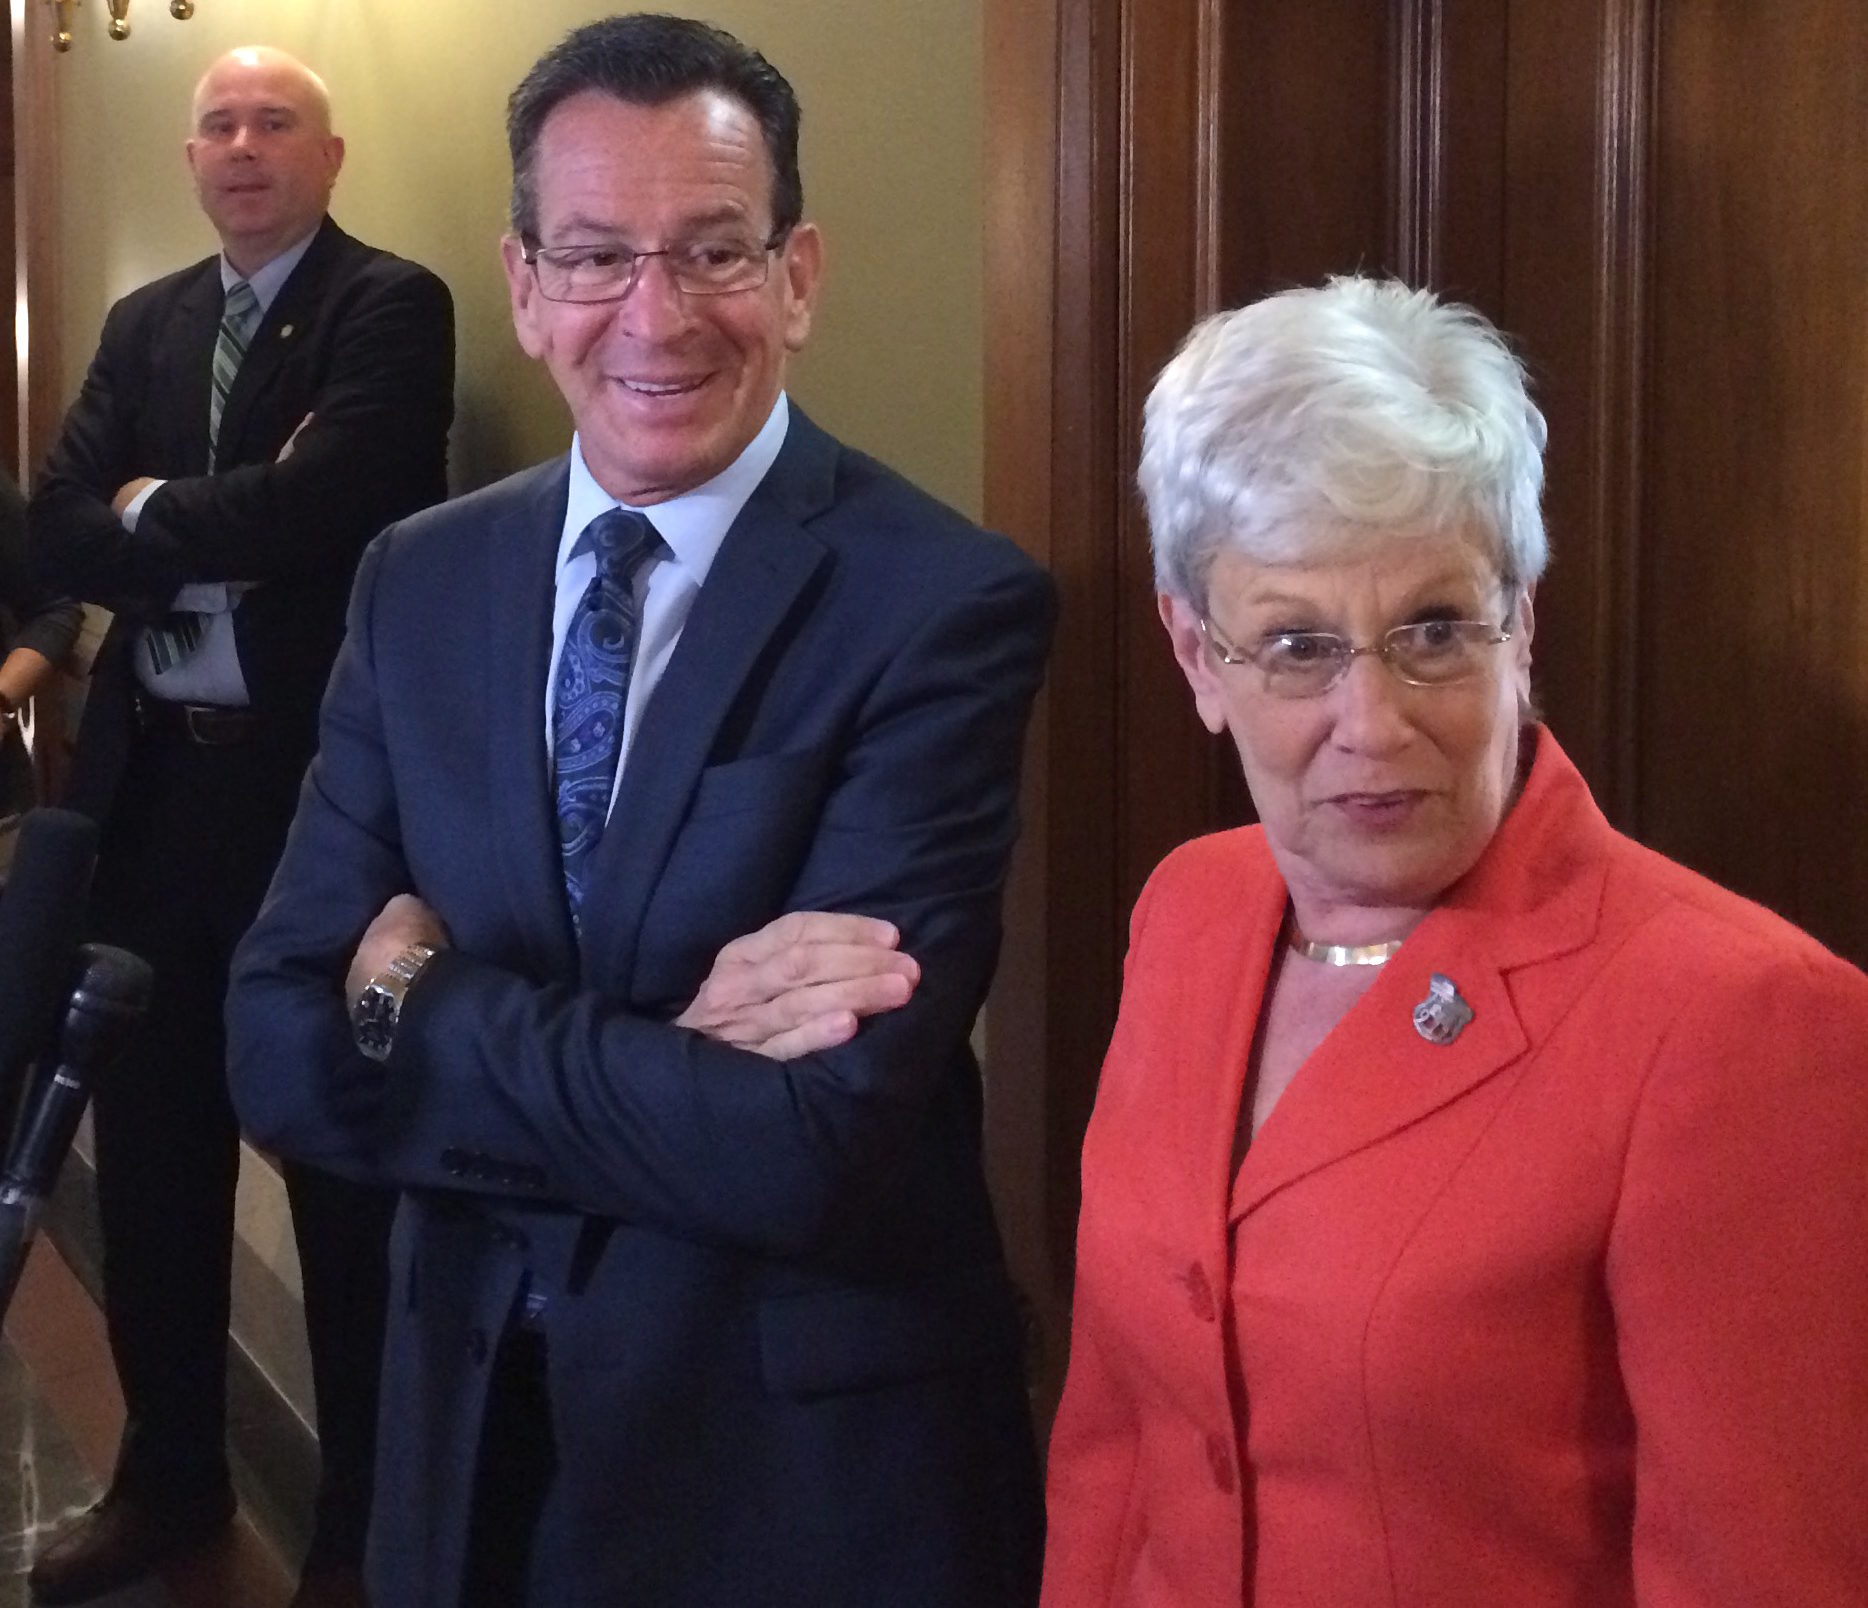 Challenges at home as Malloy raises national profile